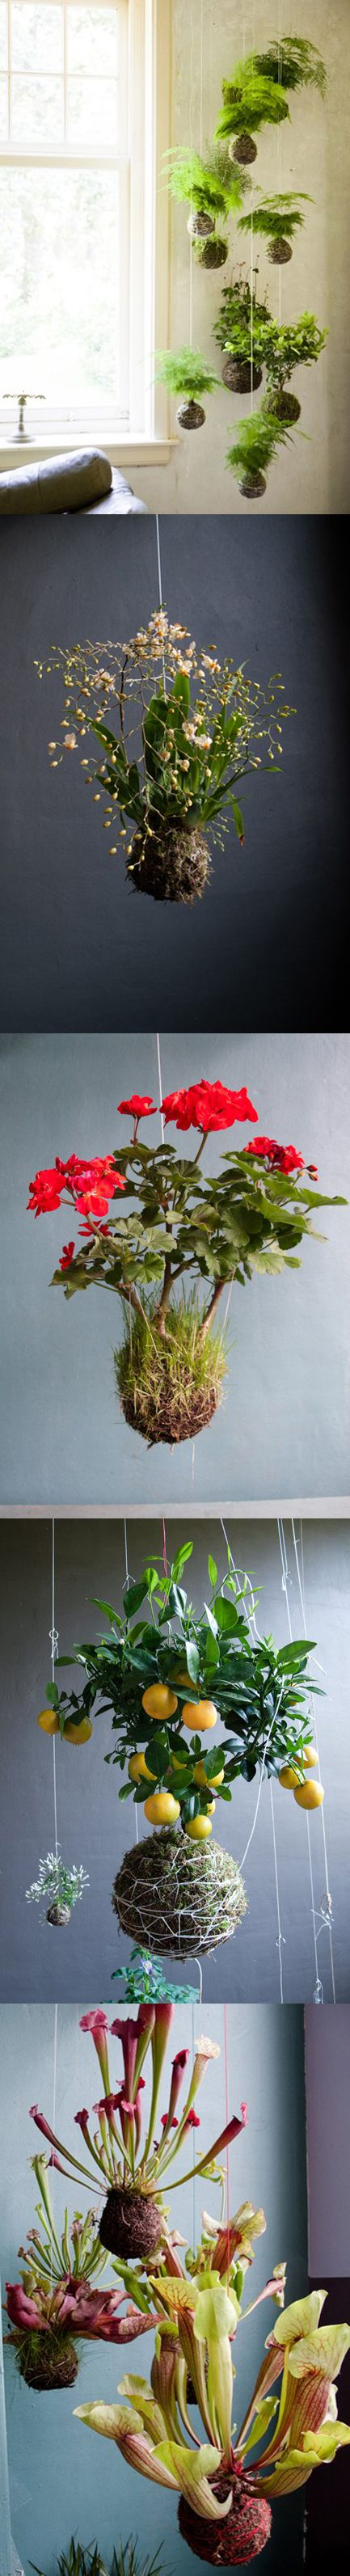 hanging garden-yes please!